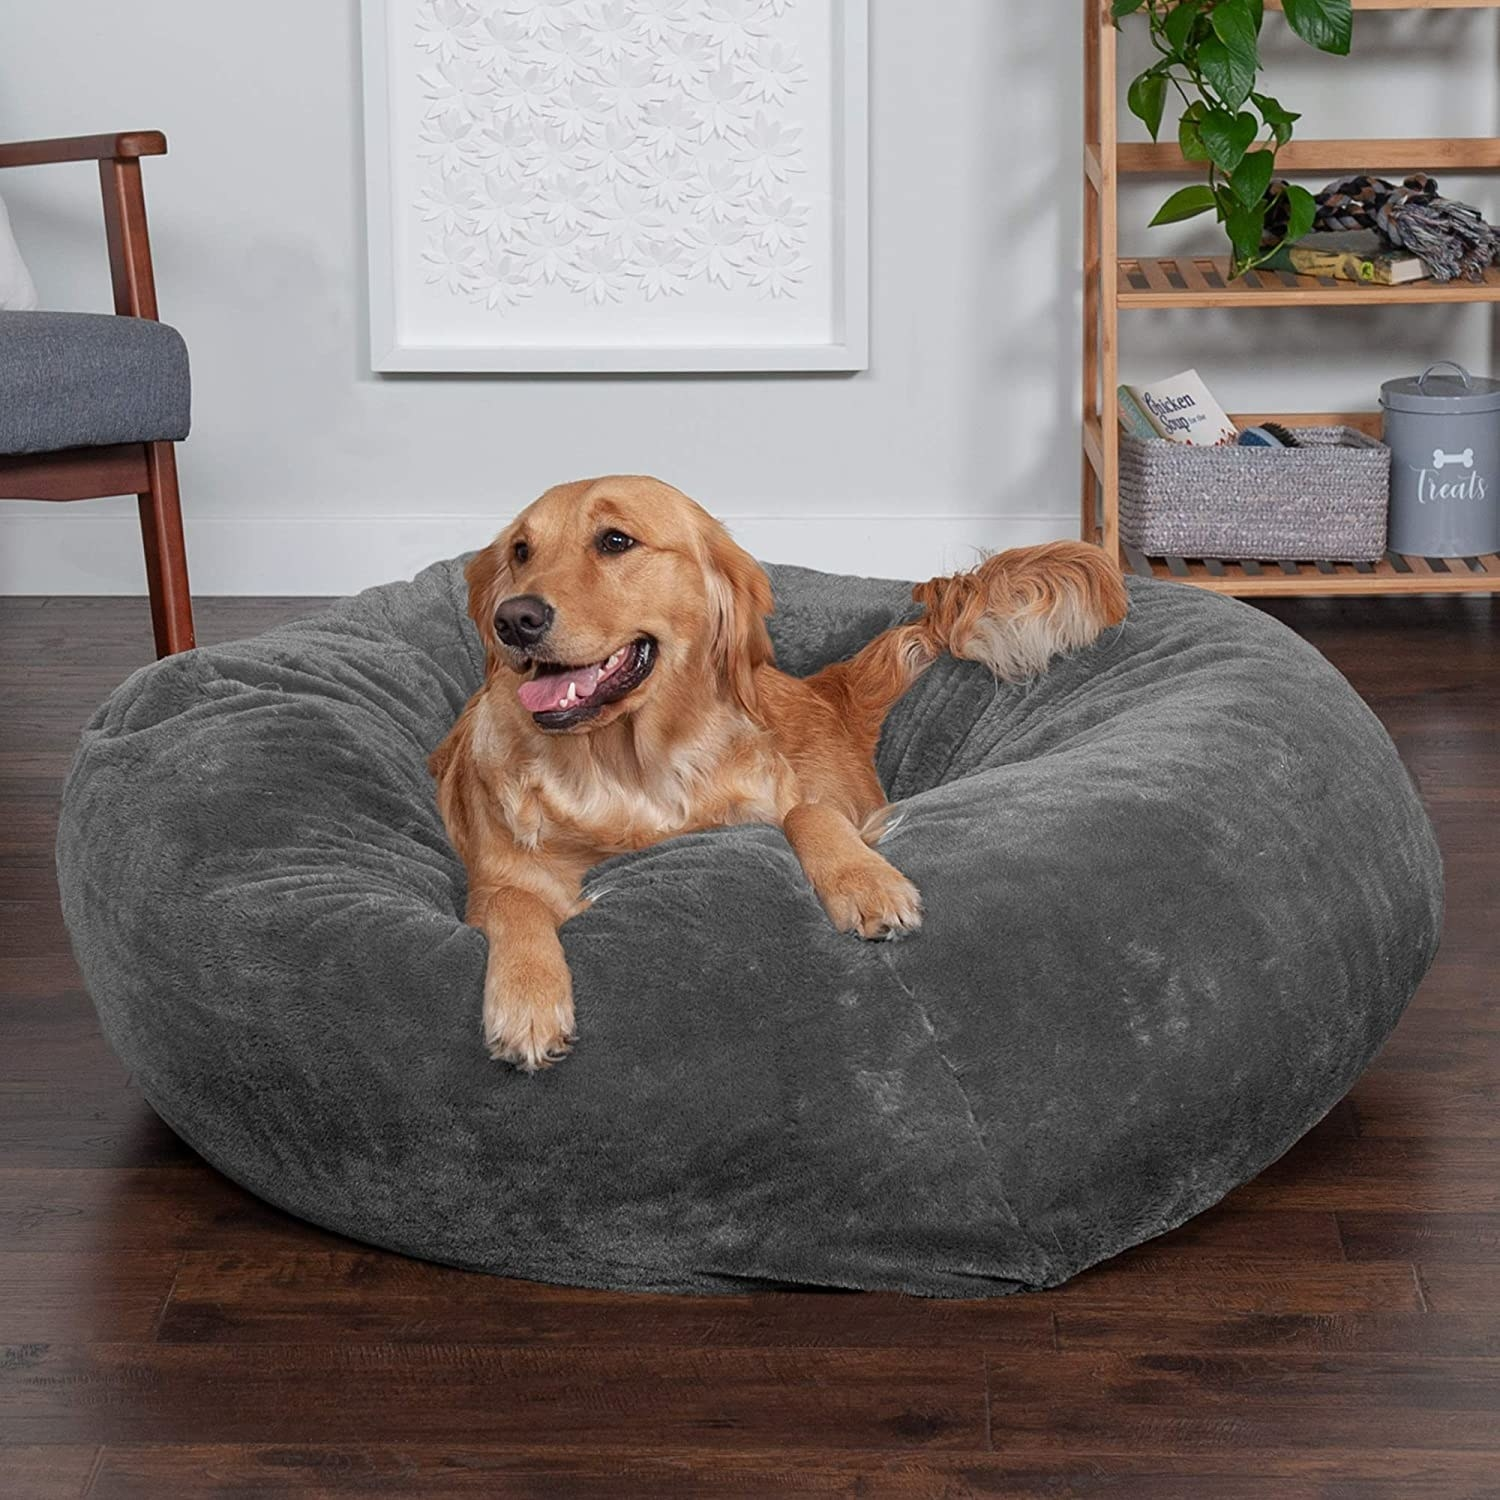 Dog resting on large pet bed